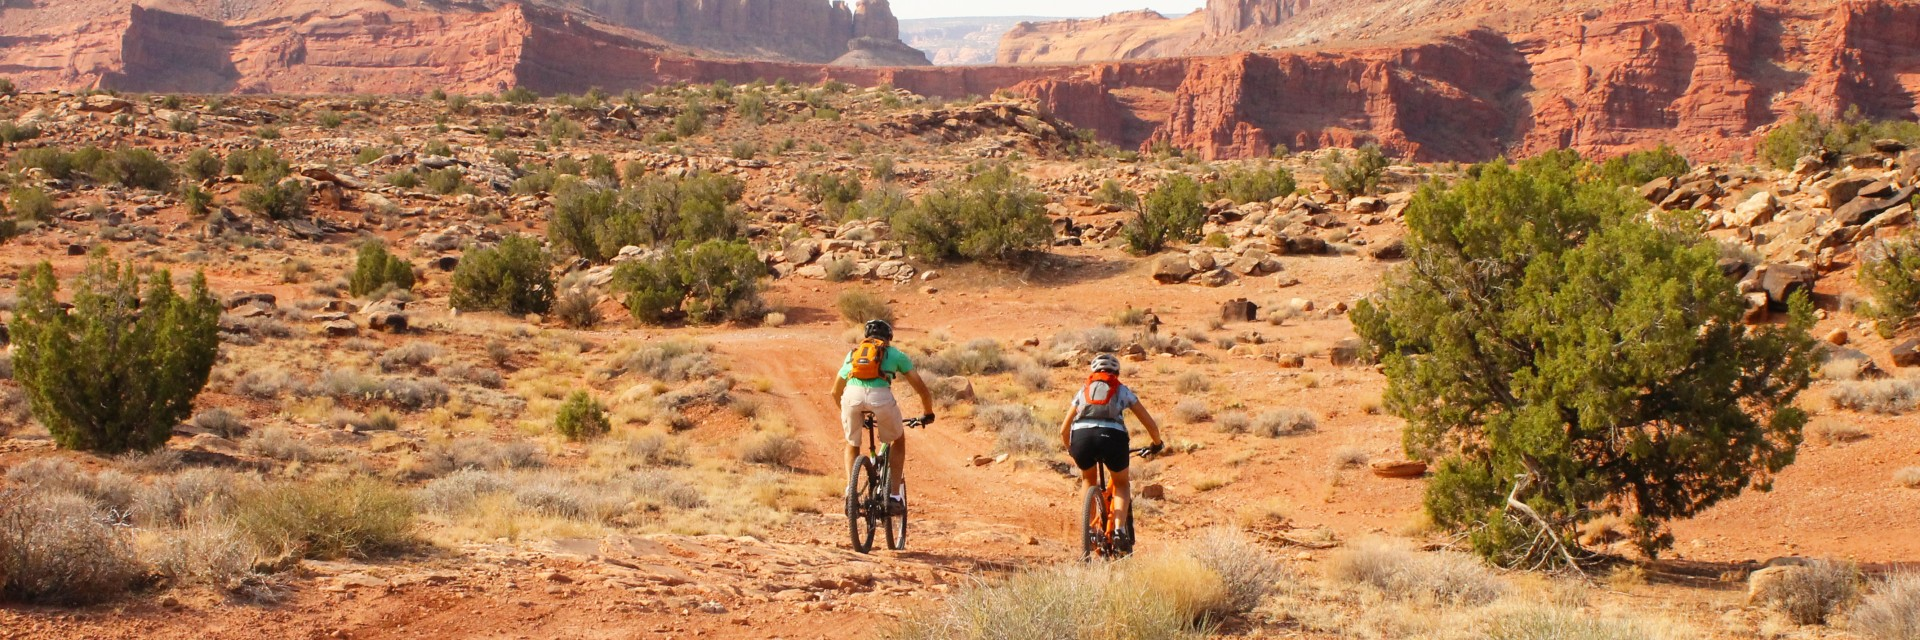 Moab Brands Trails includes the Courthouse Loop